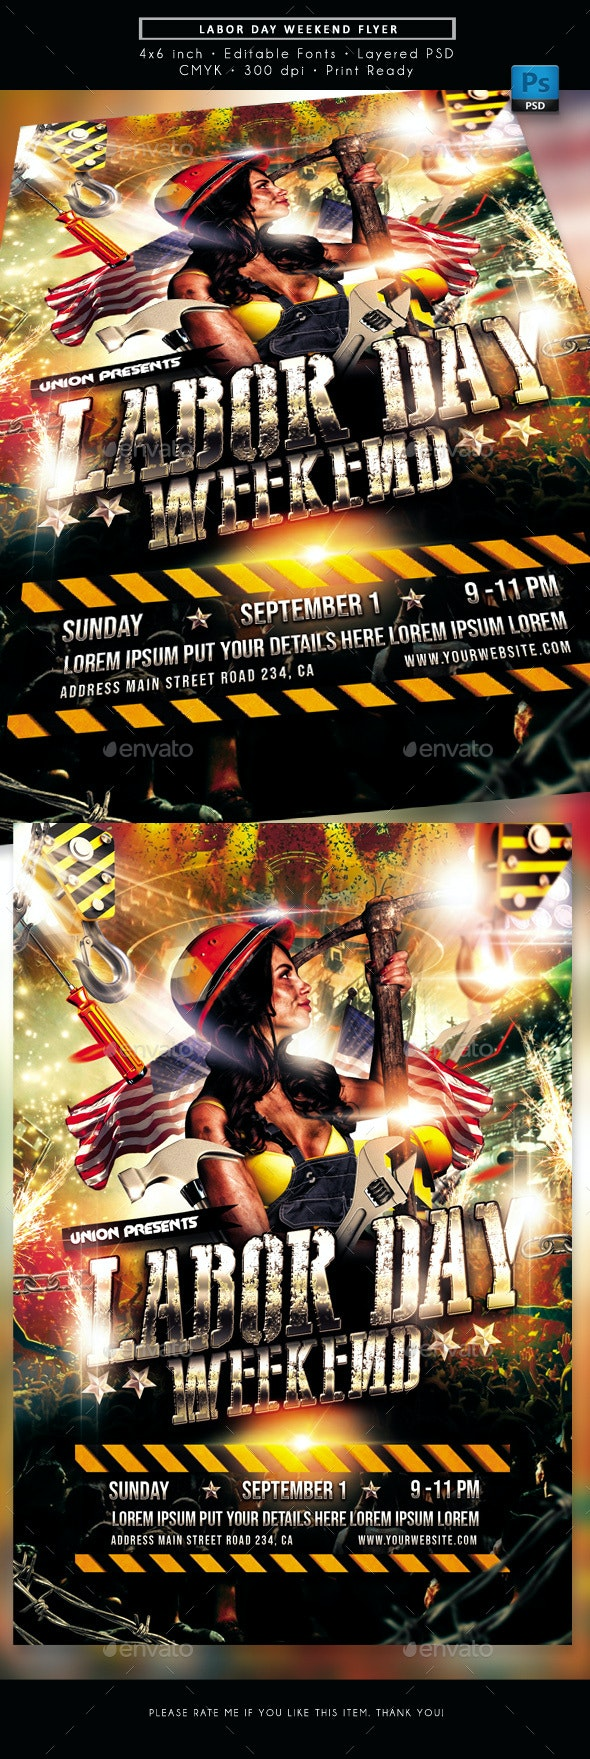 Labor Day Weekend Event Flyer - Events Flyers